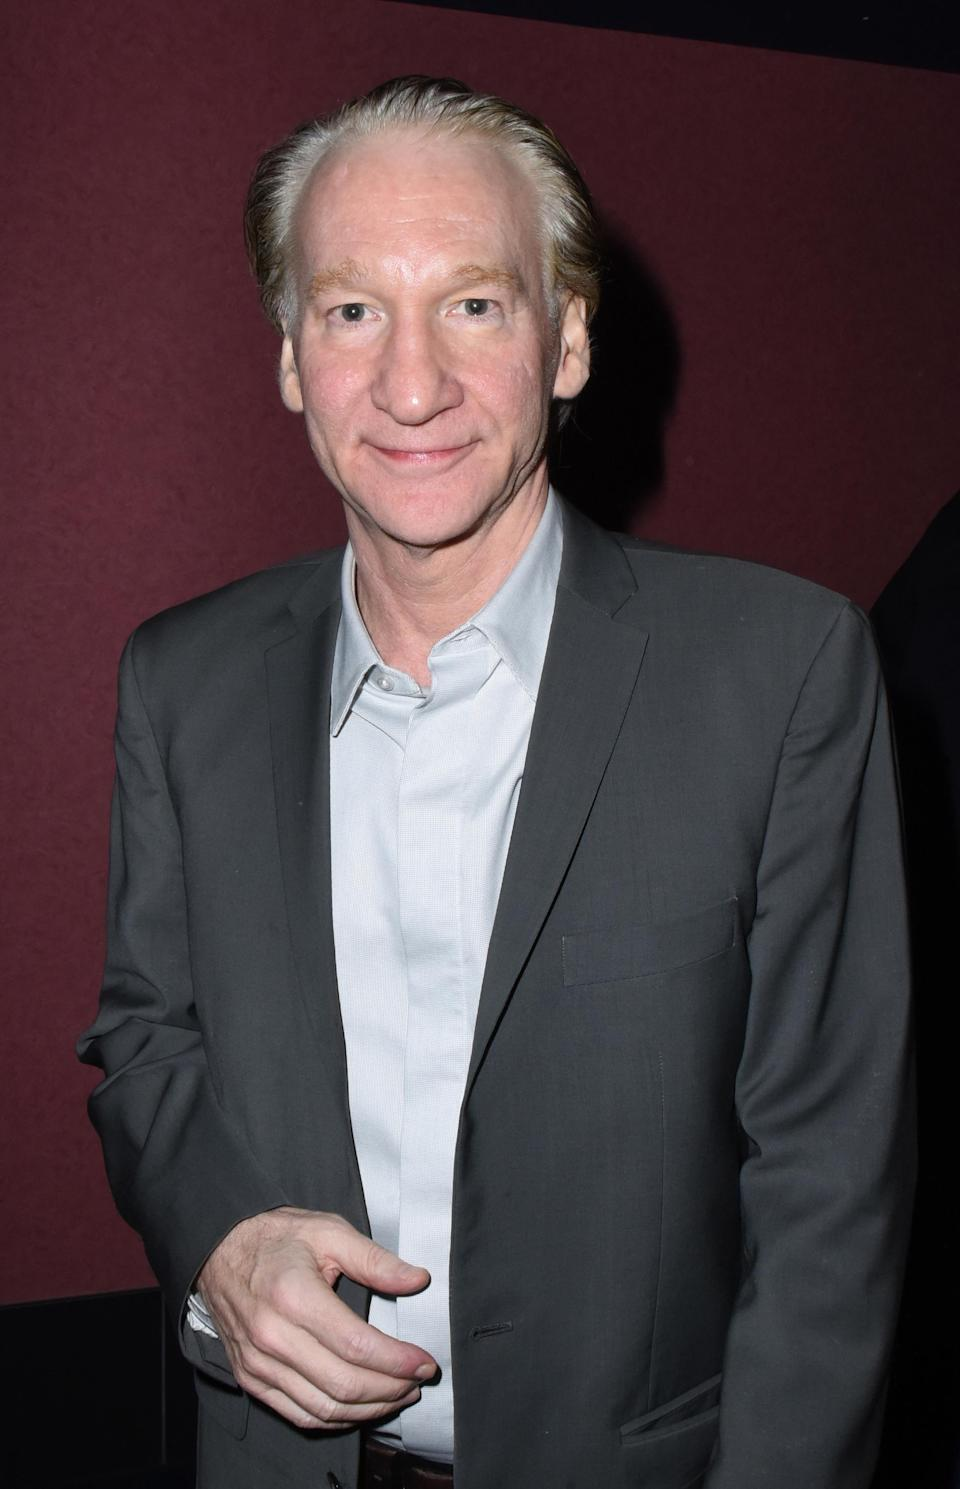 Bill Maher has been widely criticized for his Stan Lee comments. (Photo: Vivien Killilea/Getty Images for Electric Entertainment)